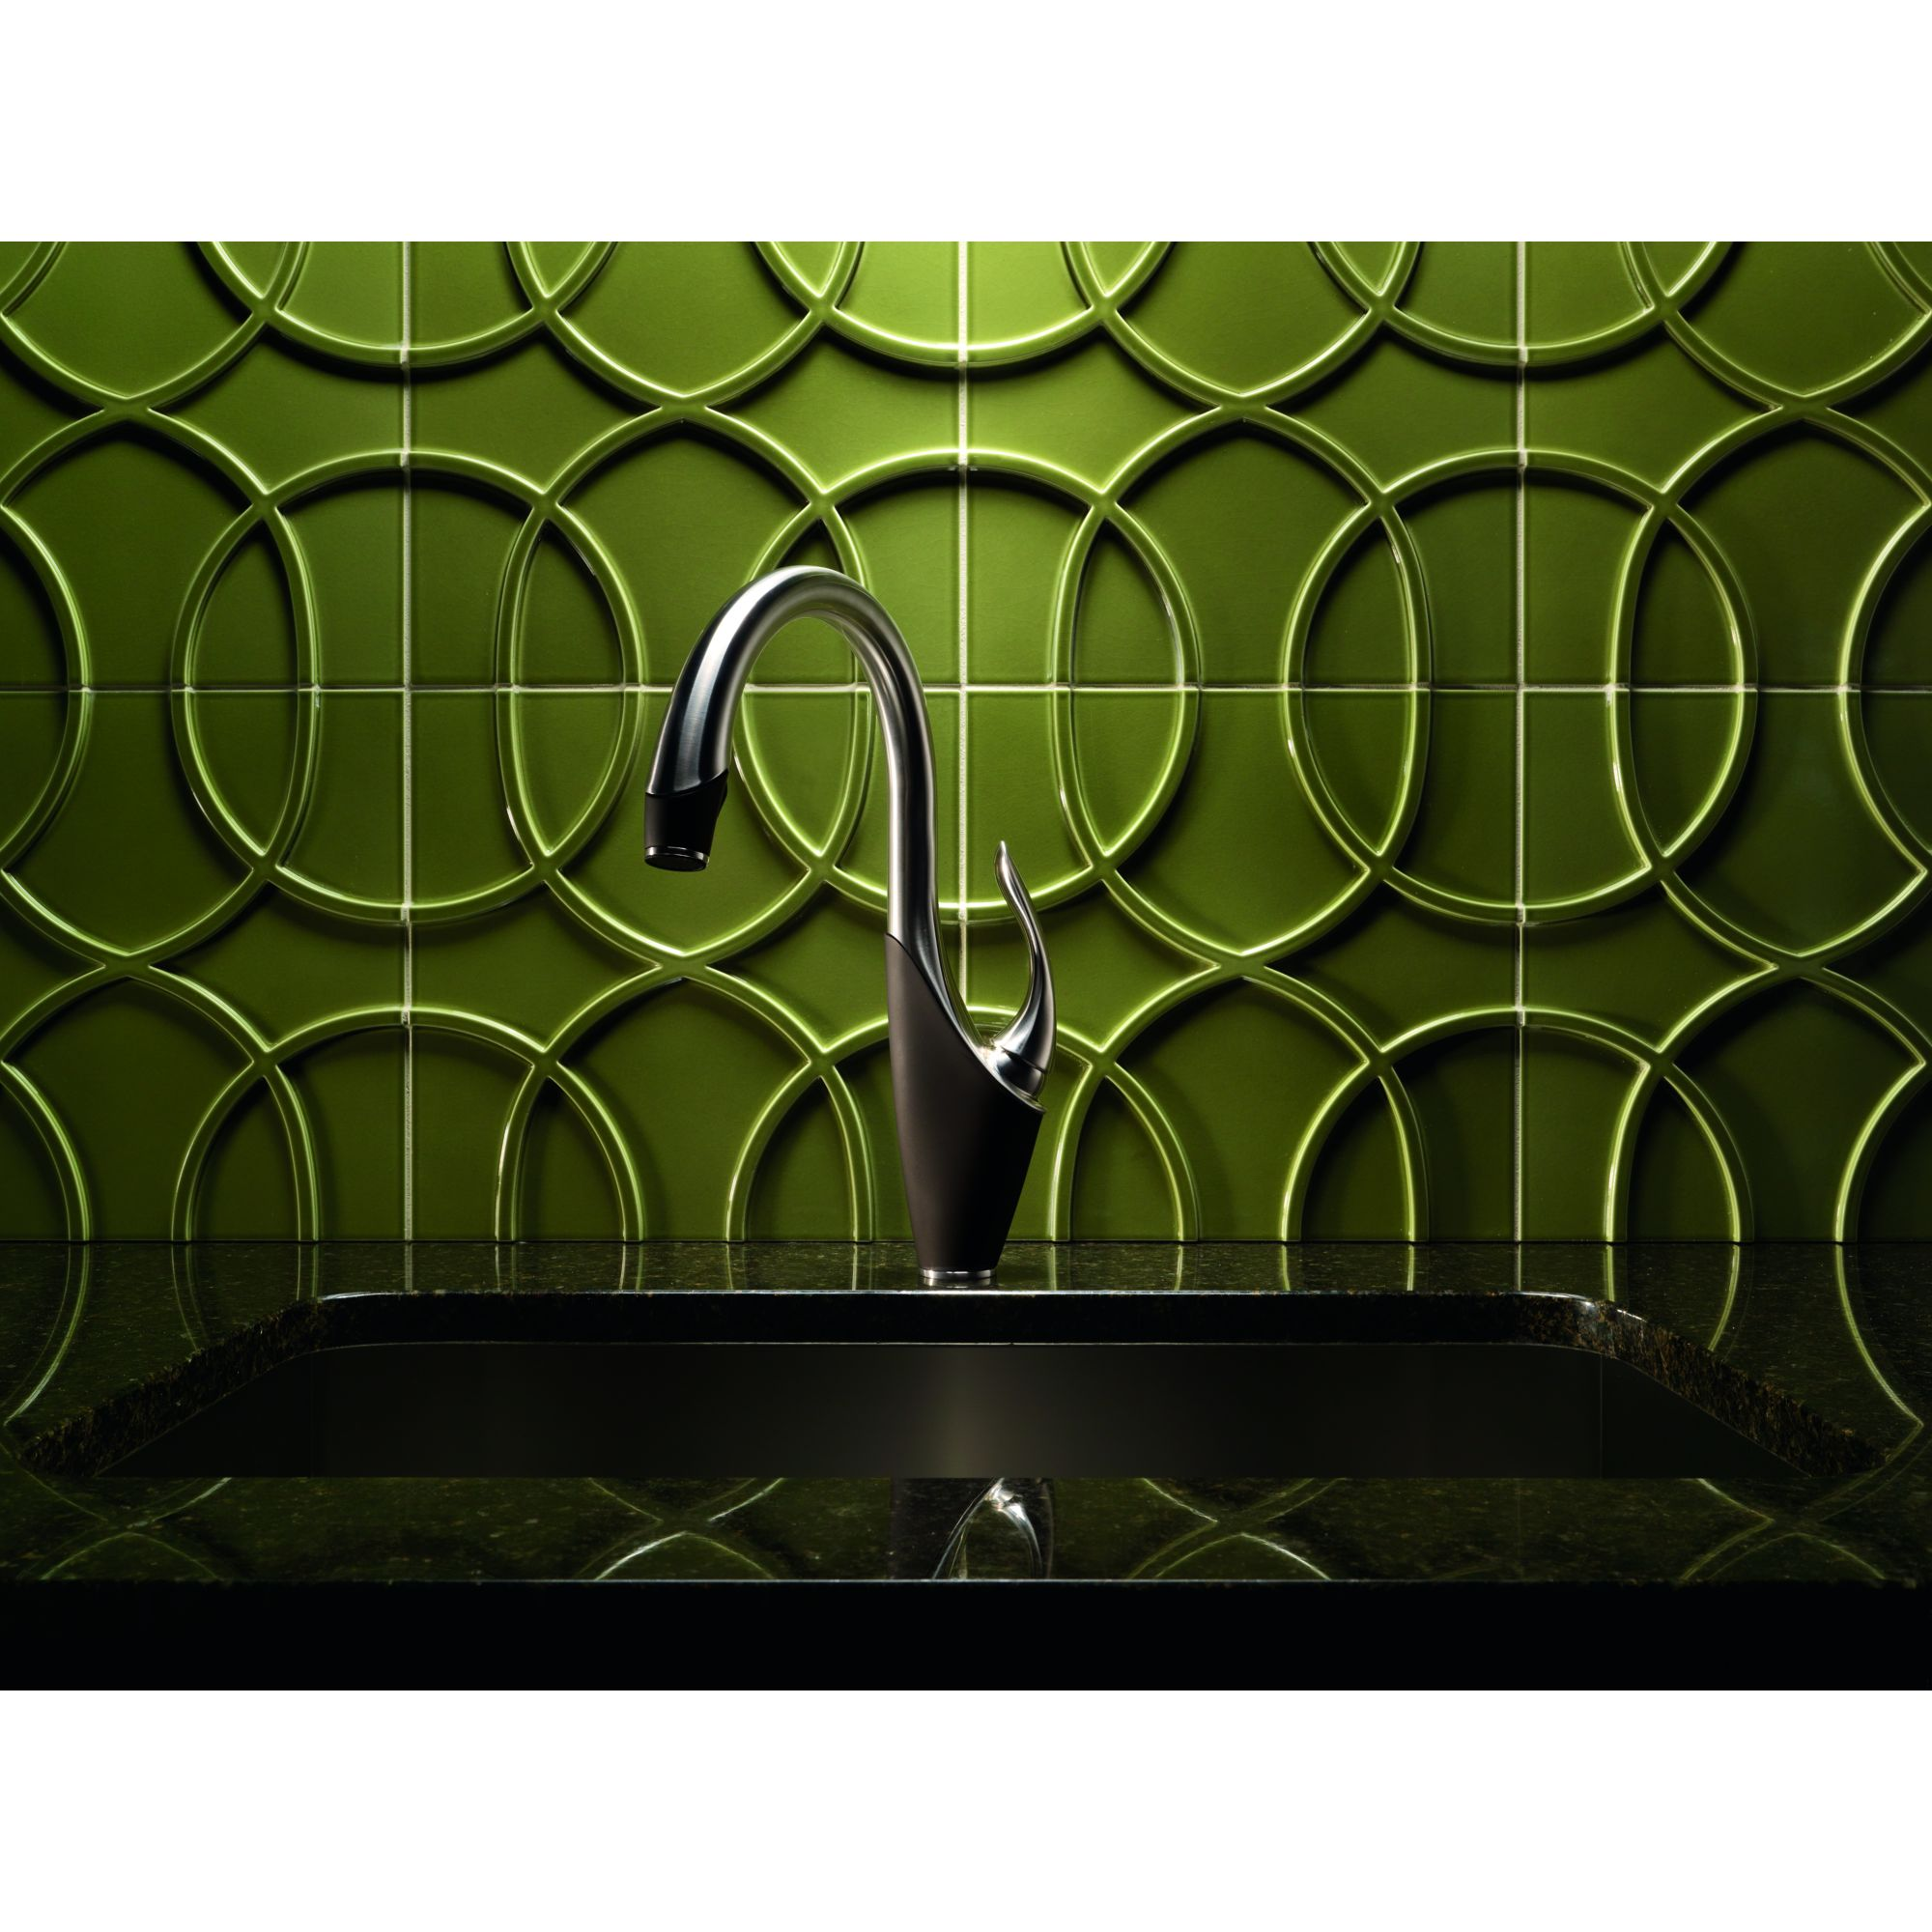 stylish swan inspired vuelo faucets from brizo brizo kitchen faucets vuelo kitchen faucets 02